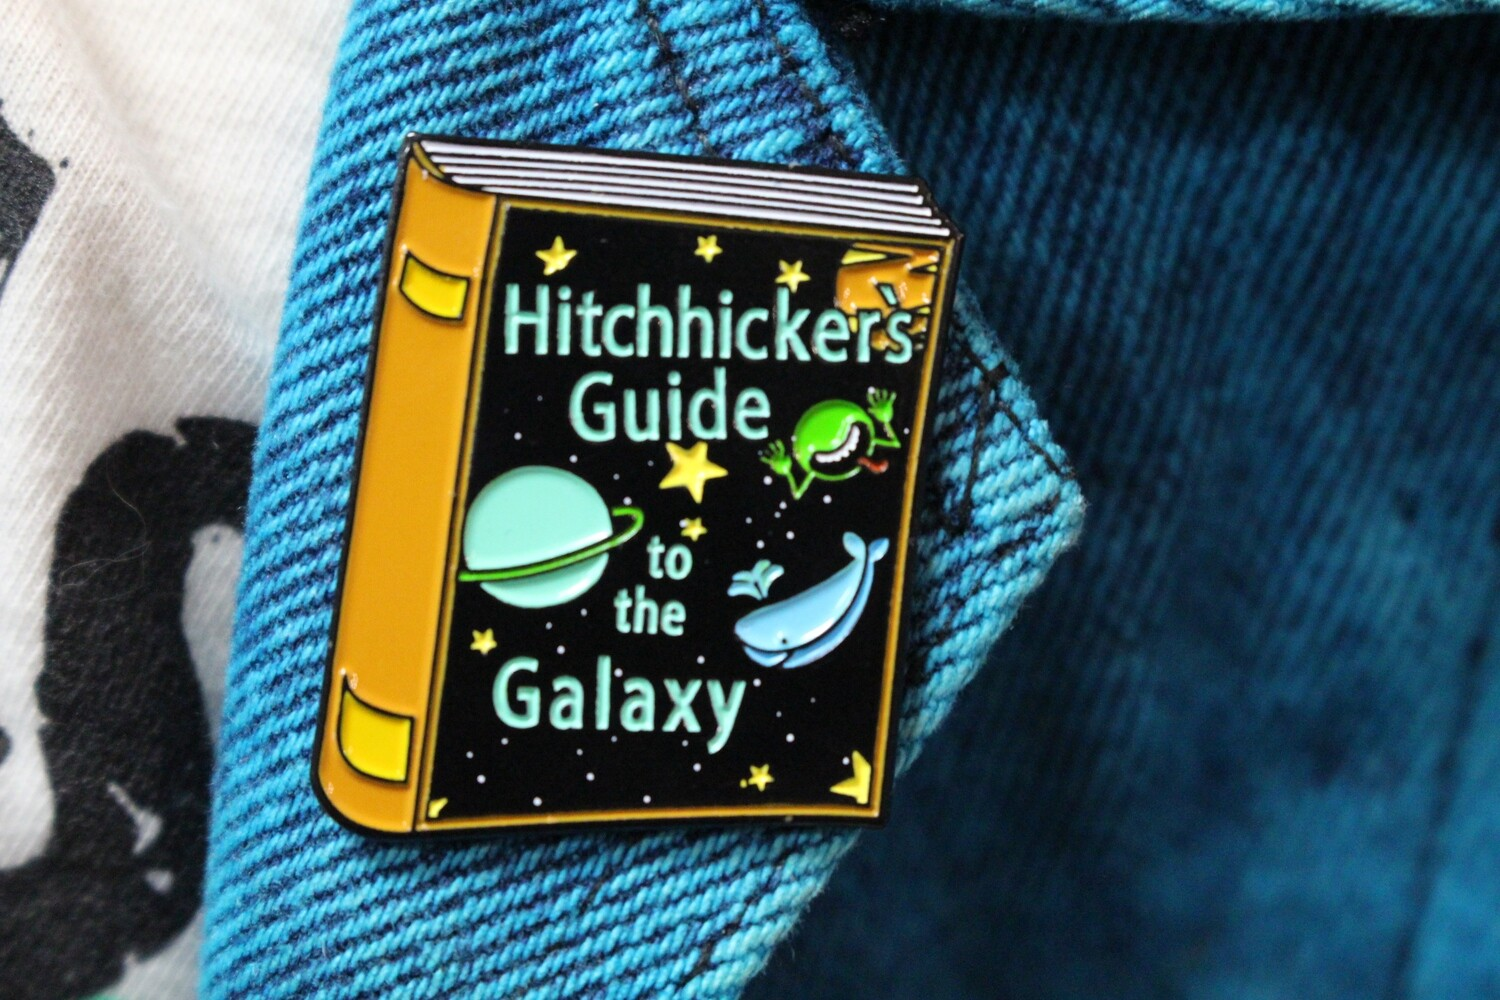 Hitchhiker's Guide Book Pin